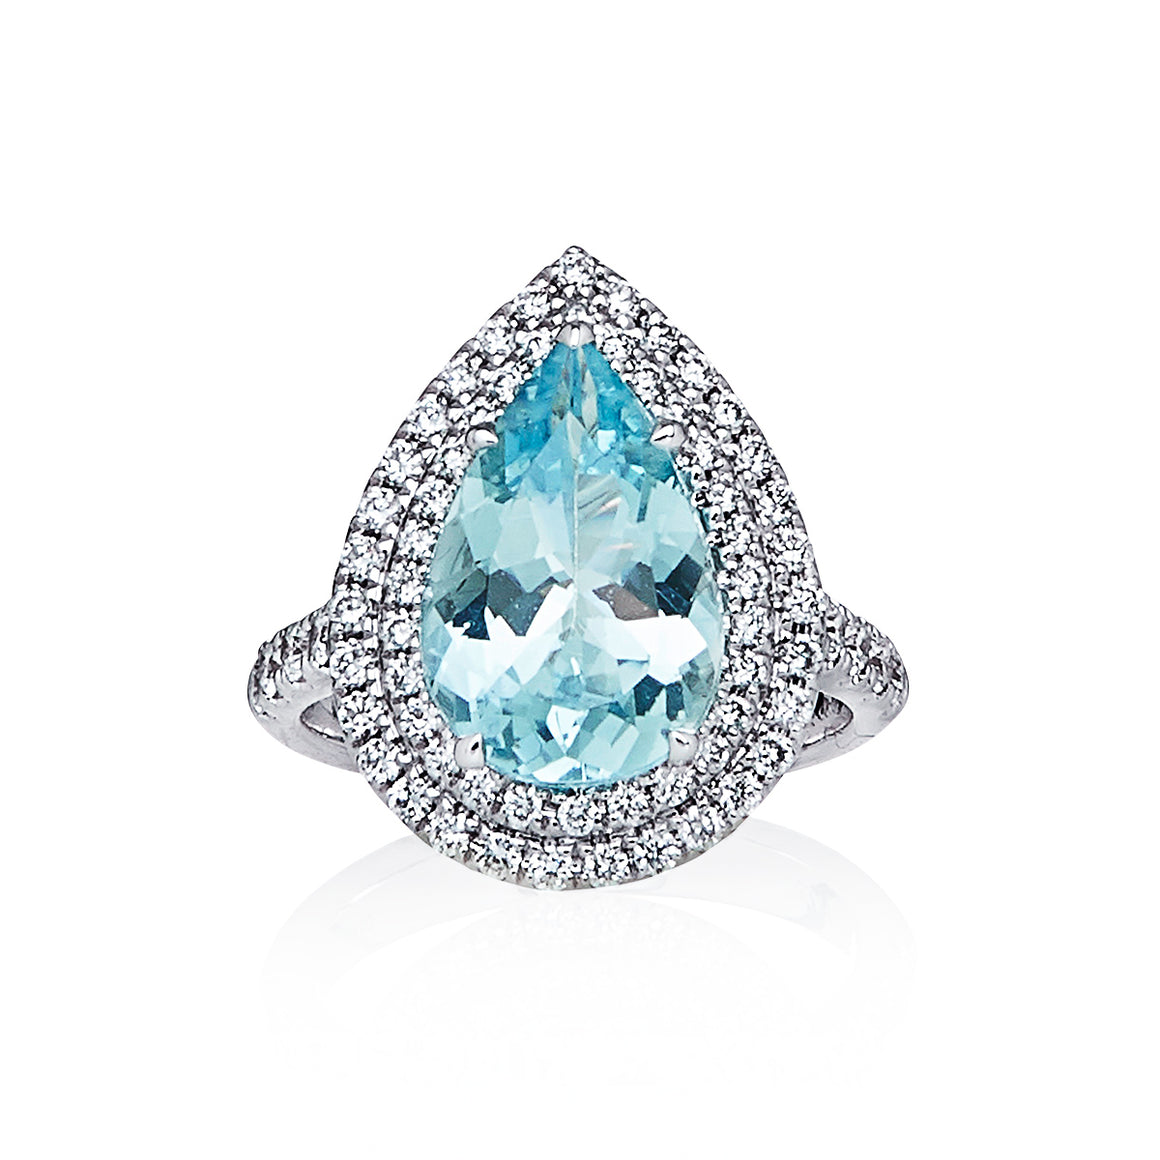 Aquamarine & Diamond 'Alarna' Pear Shaped Ring - Gemma Stone  ABN:51 621 127 866